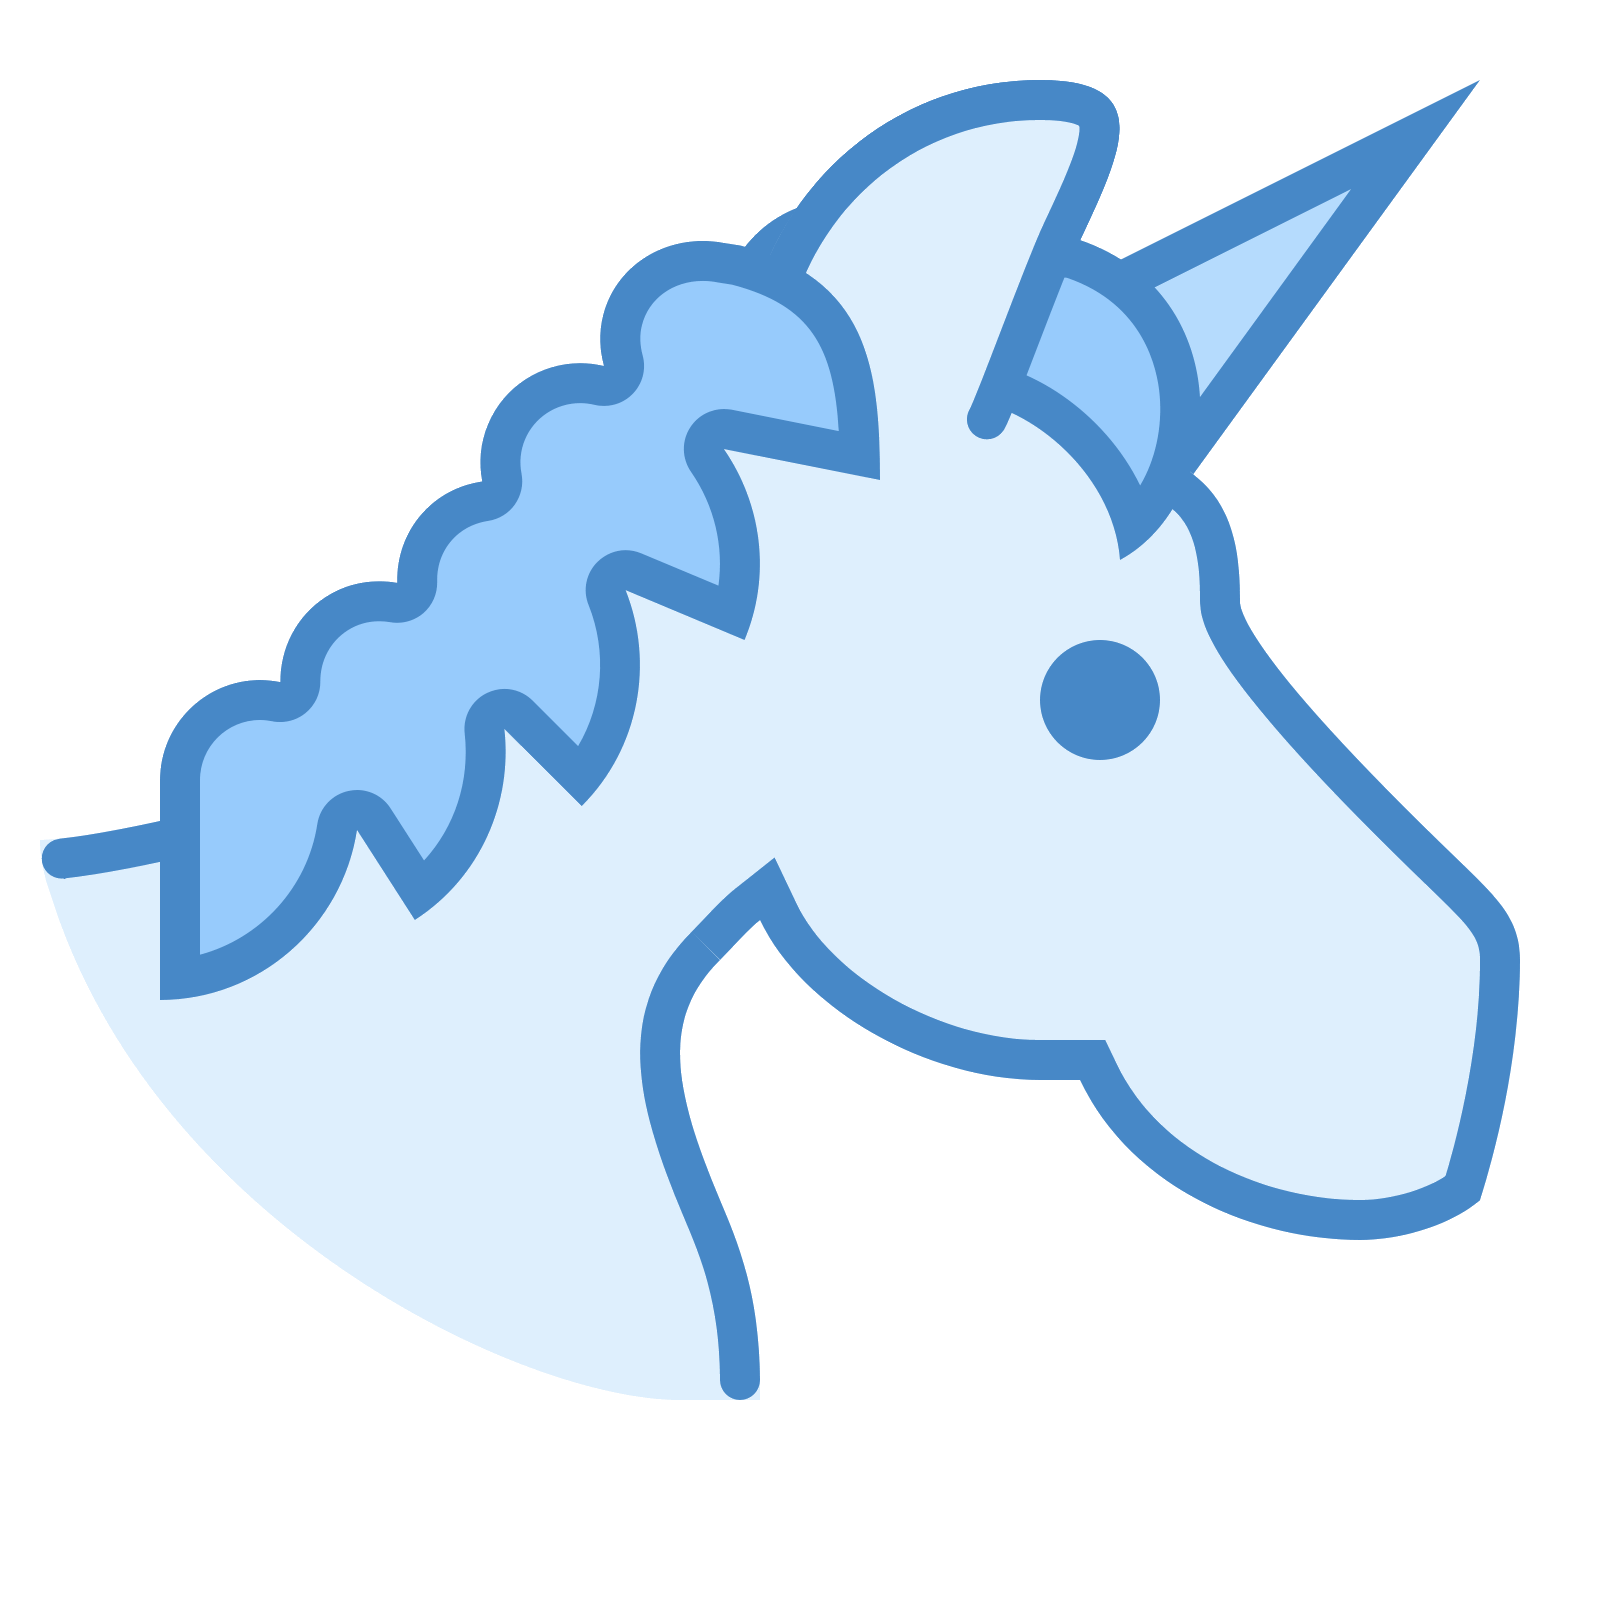 picture black and white stock Unicorn icon free download. Unicornio vector